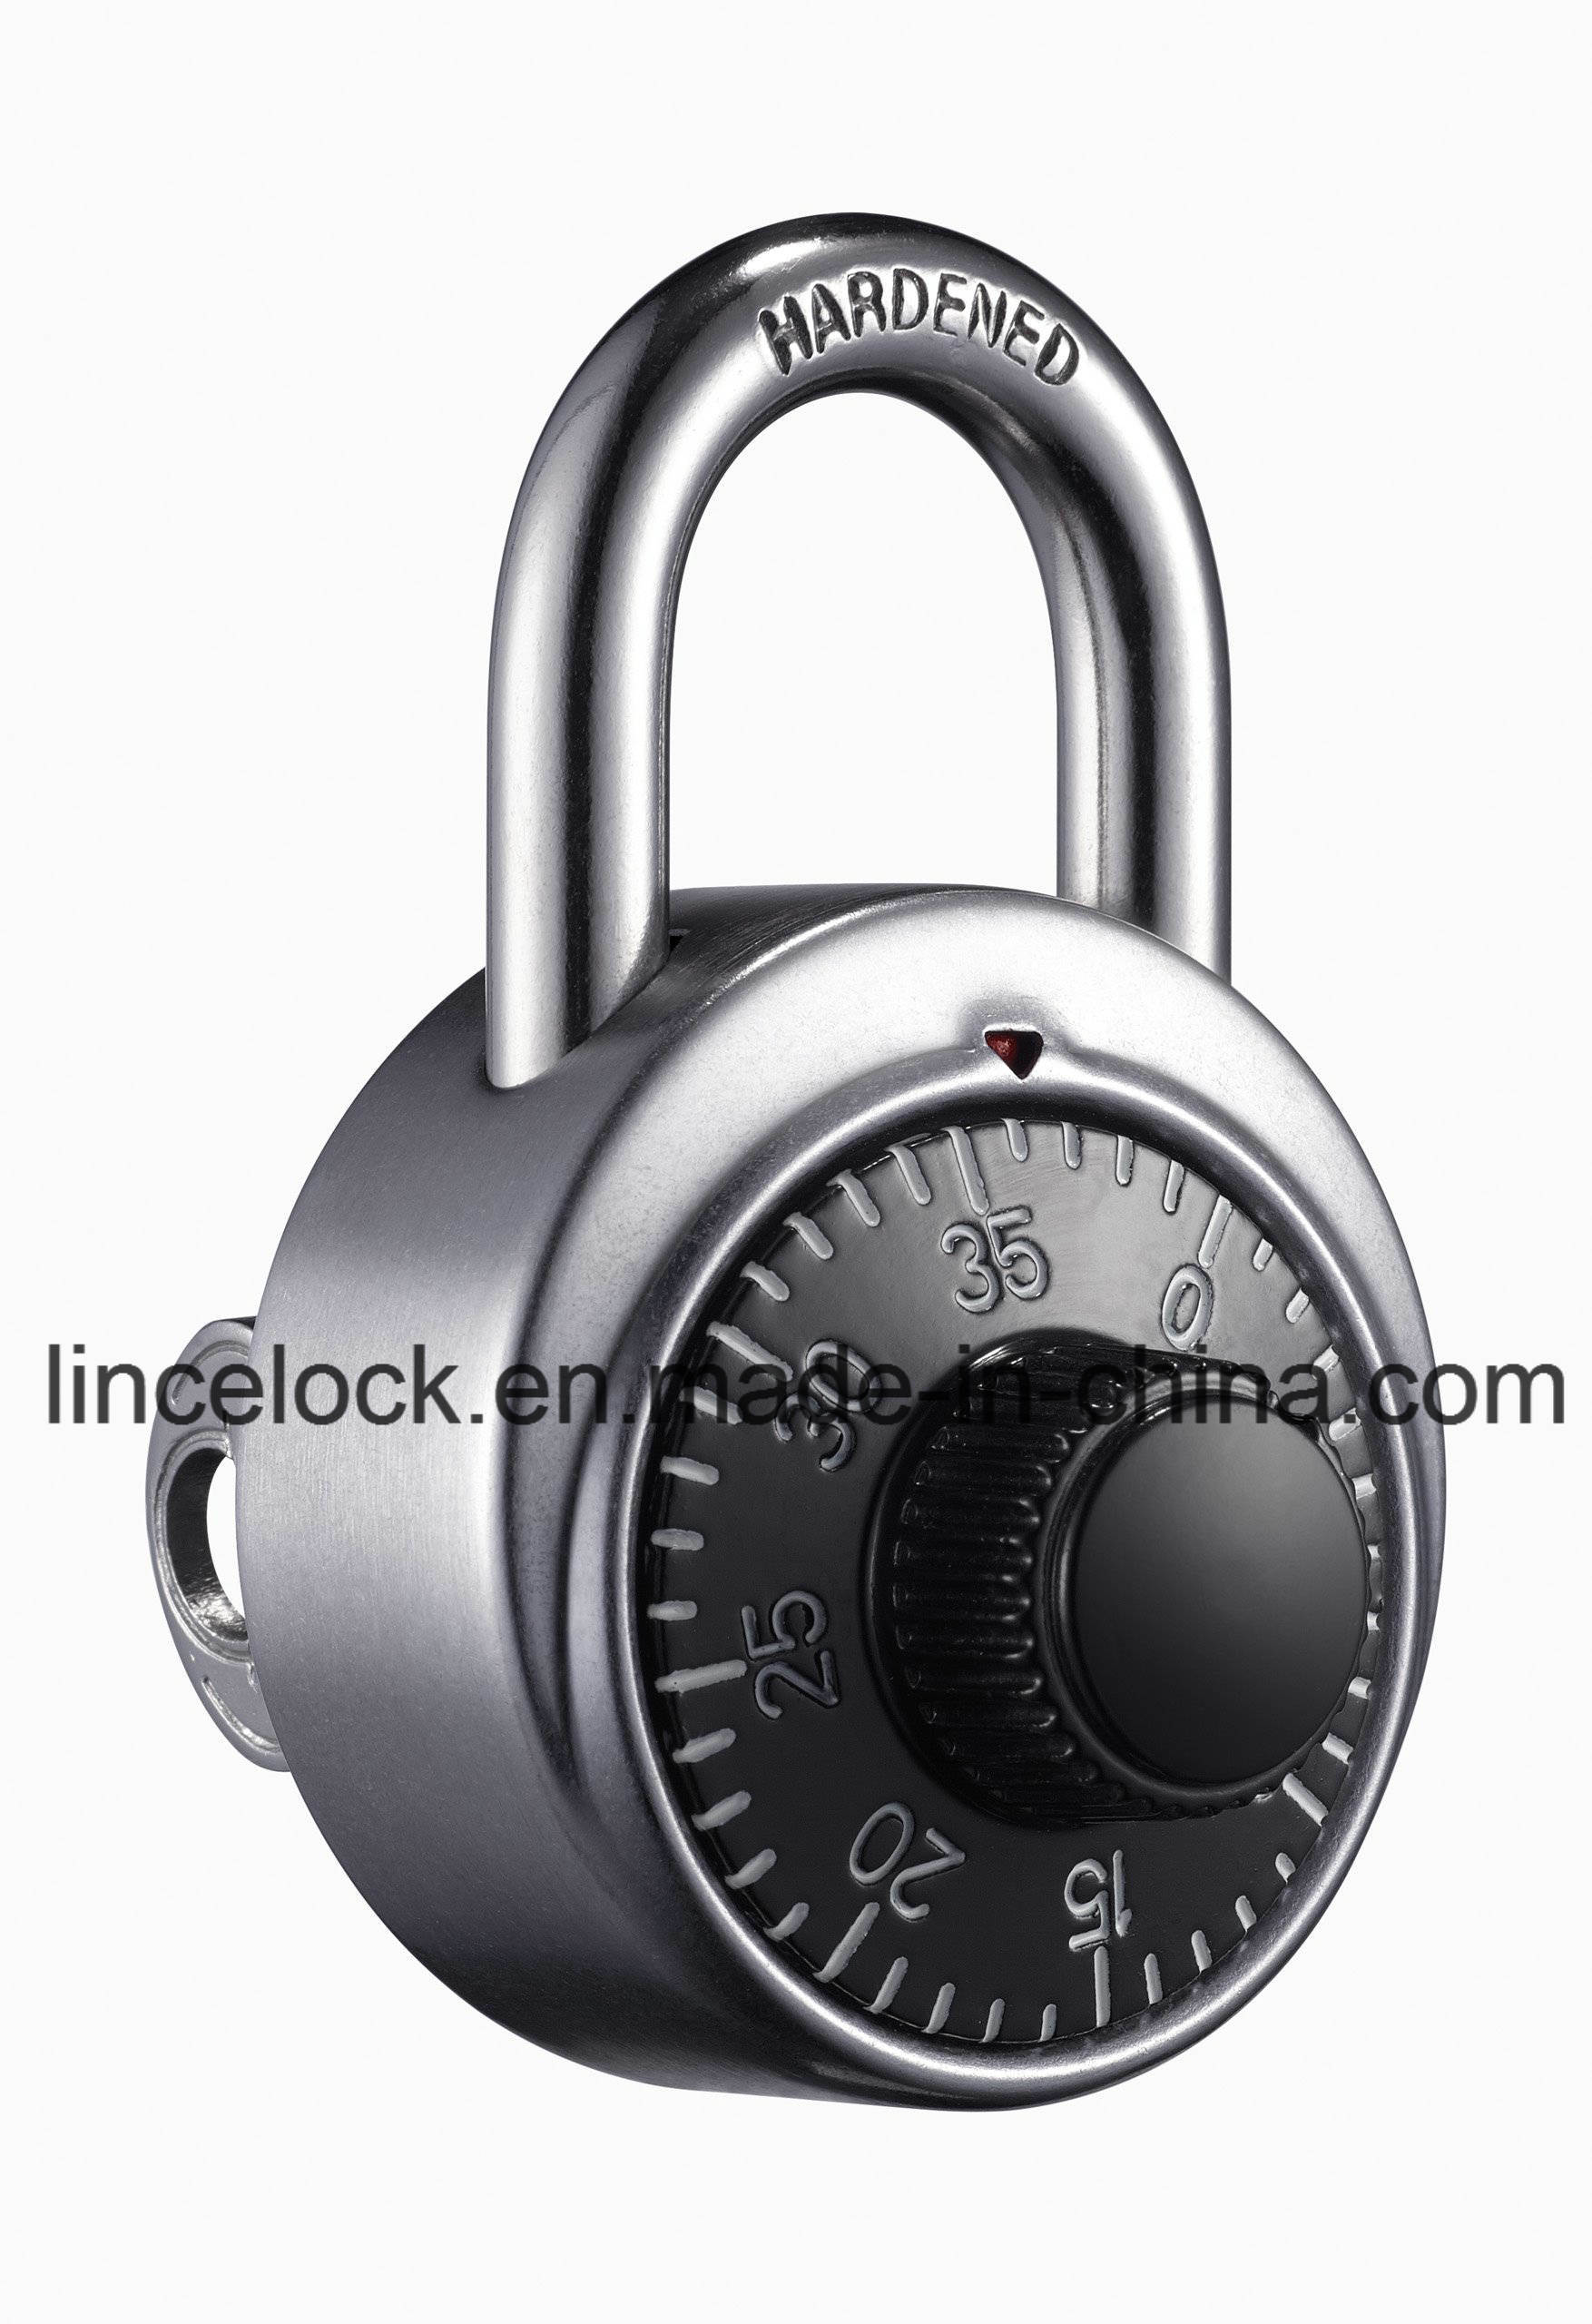 Combination Dial Padlock / Aluminum Alloy Code Lock (504)